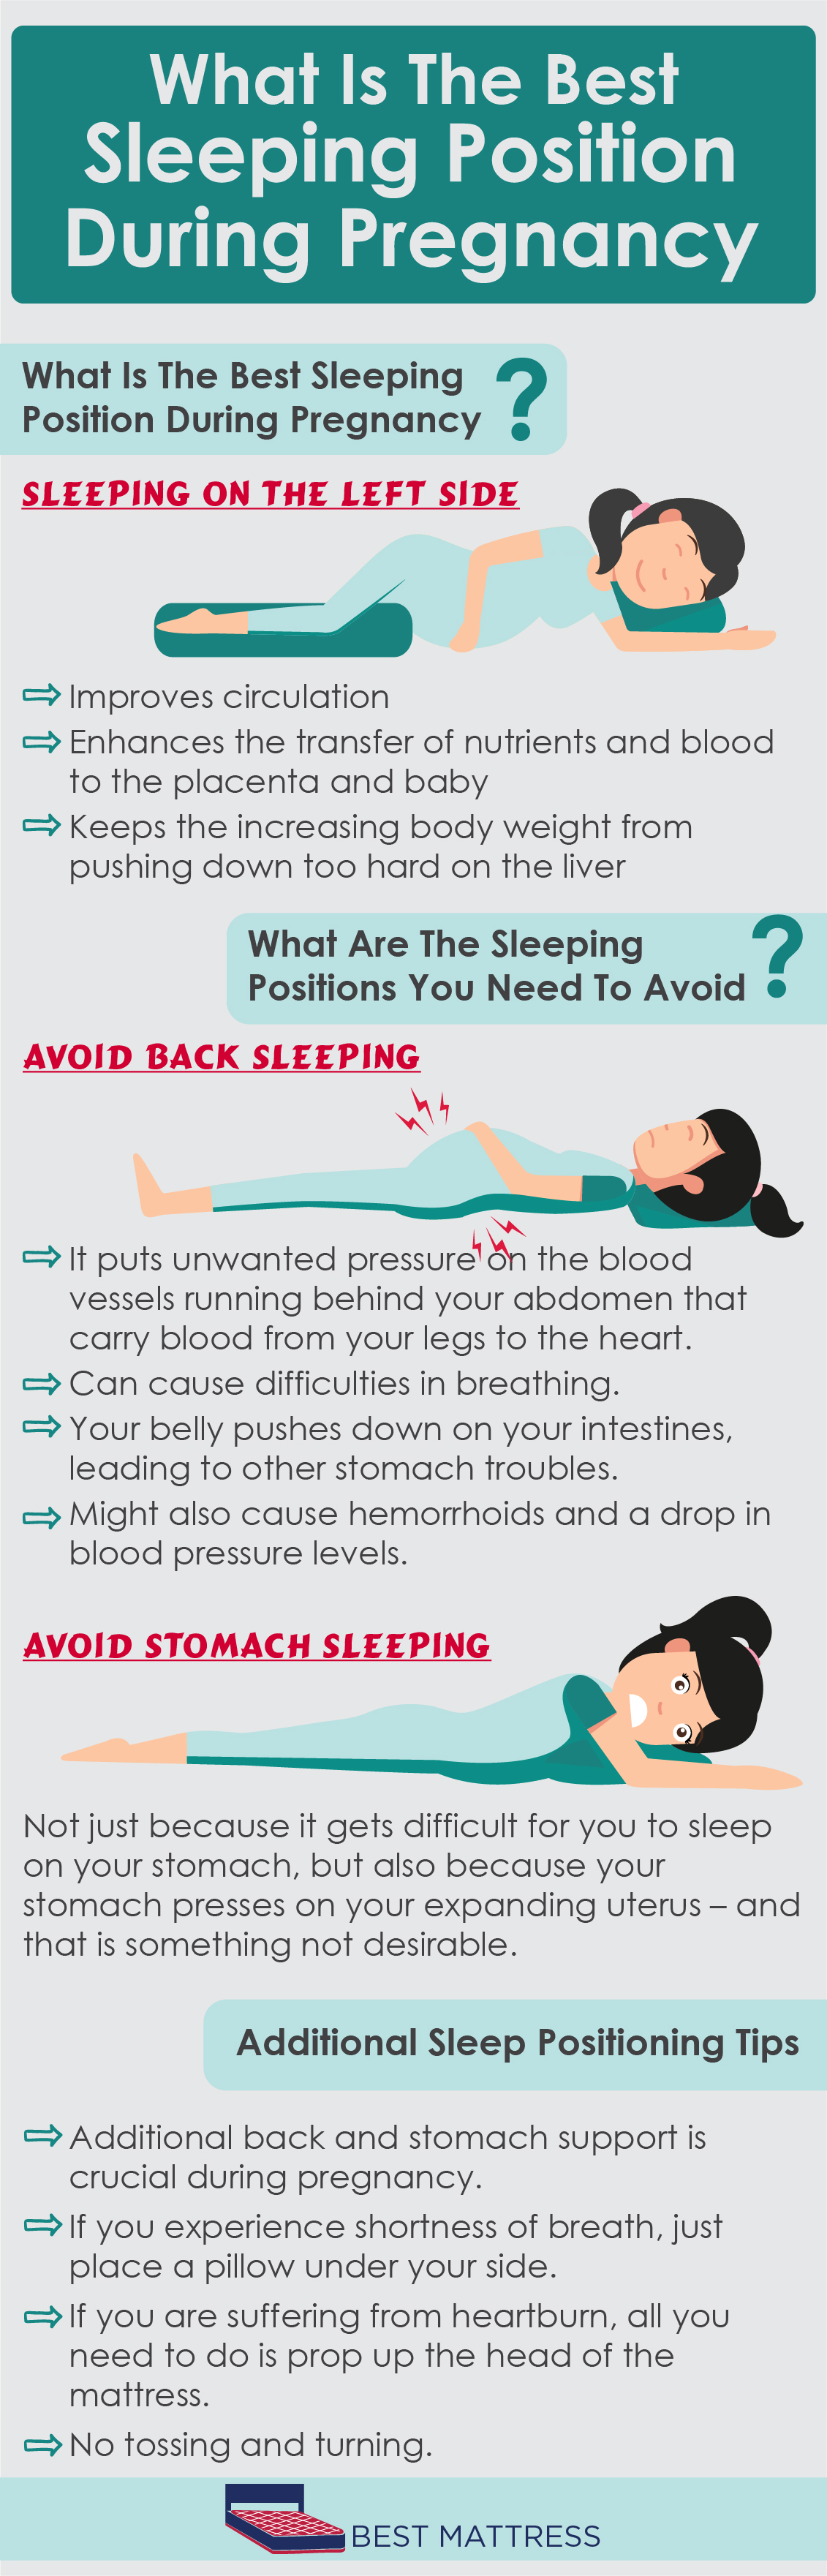 What Is The Best Sleeping Position During Pregnancy?